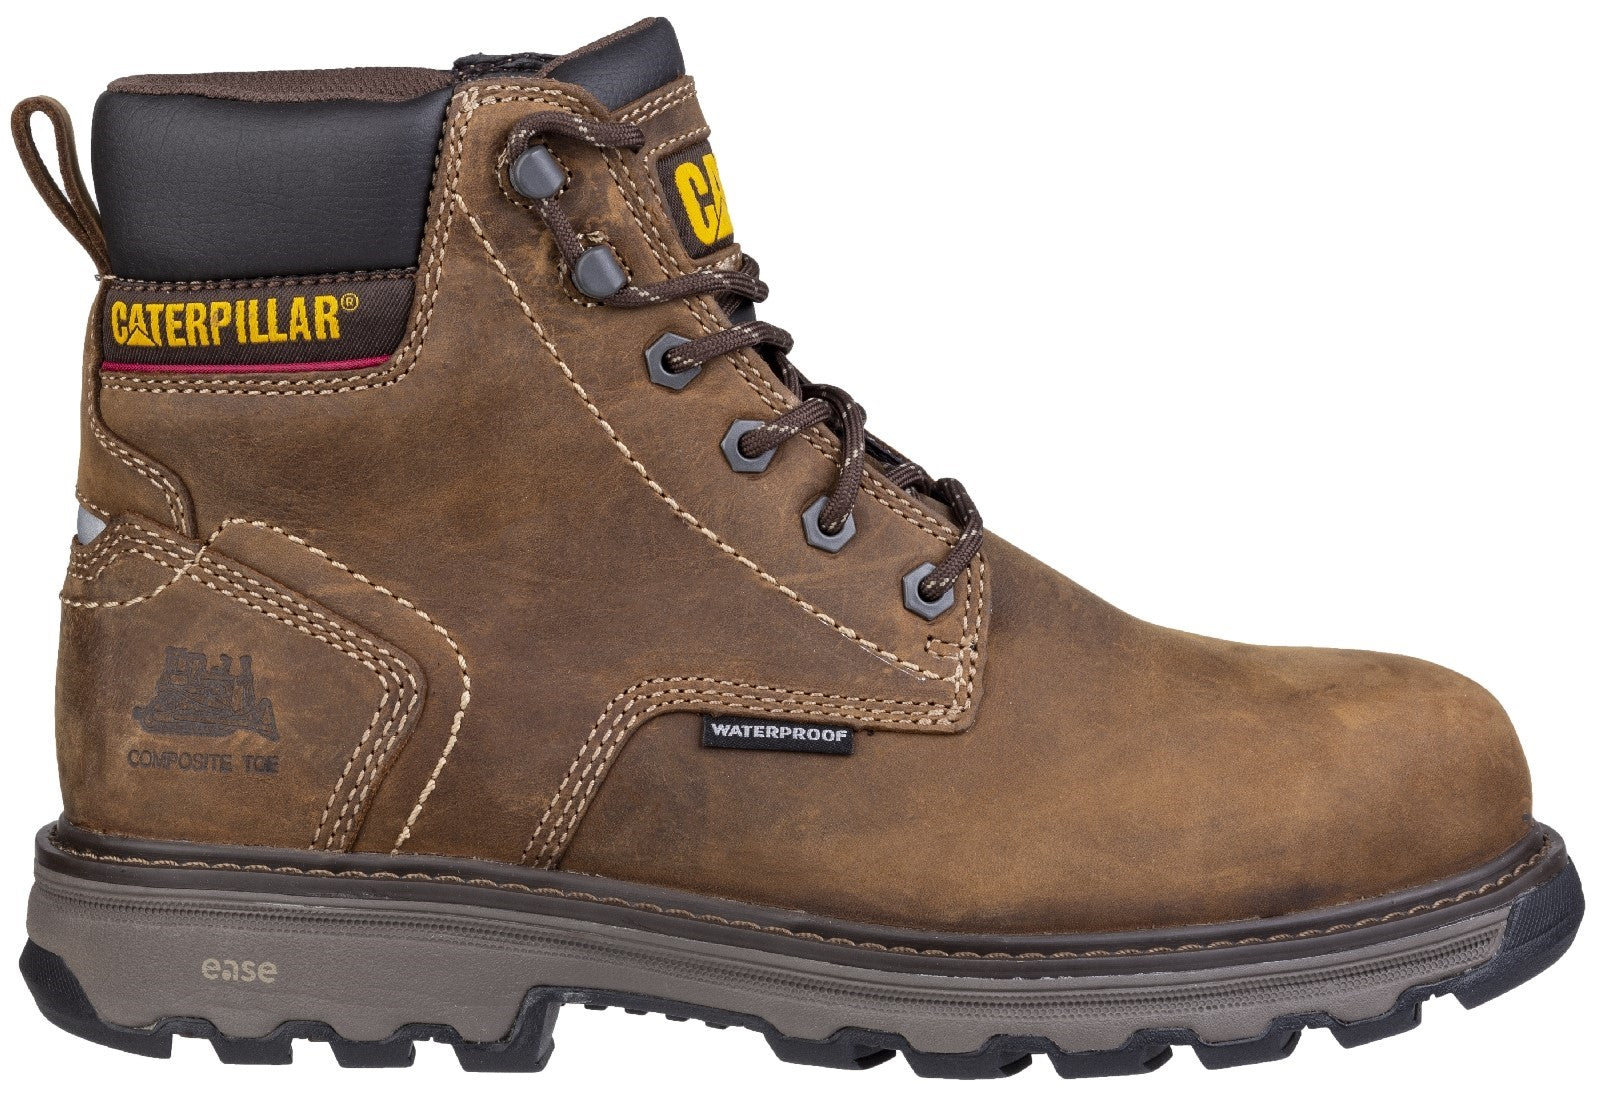 Caterpillar Men's Precision Lace Up Boot Dark Brown 28173